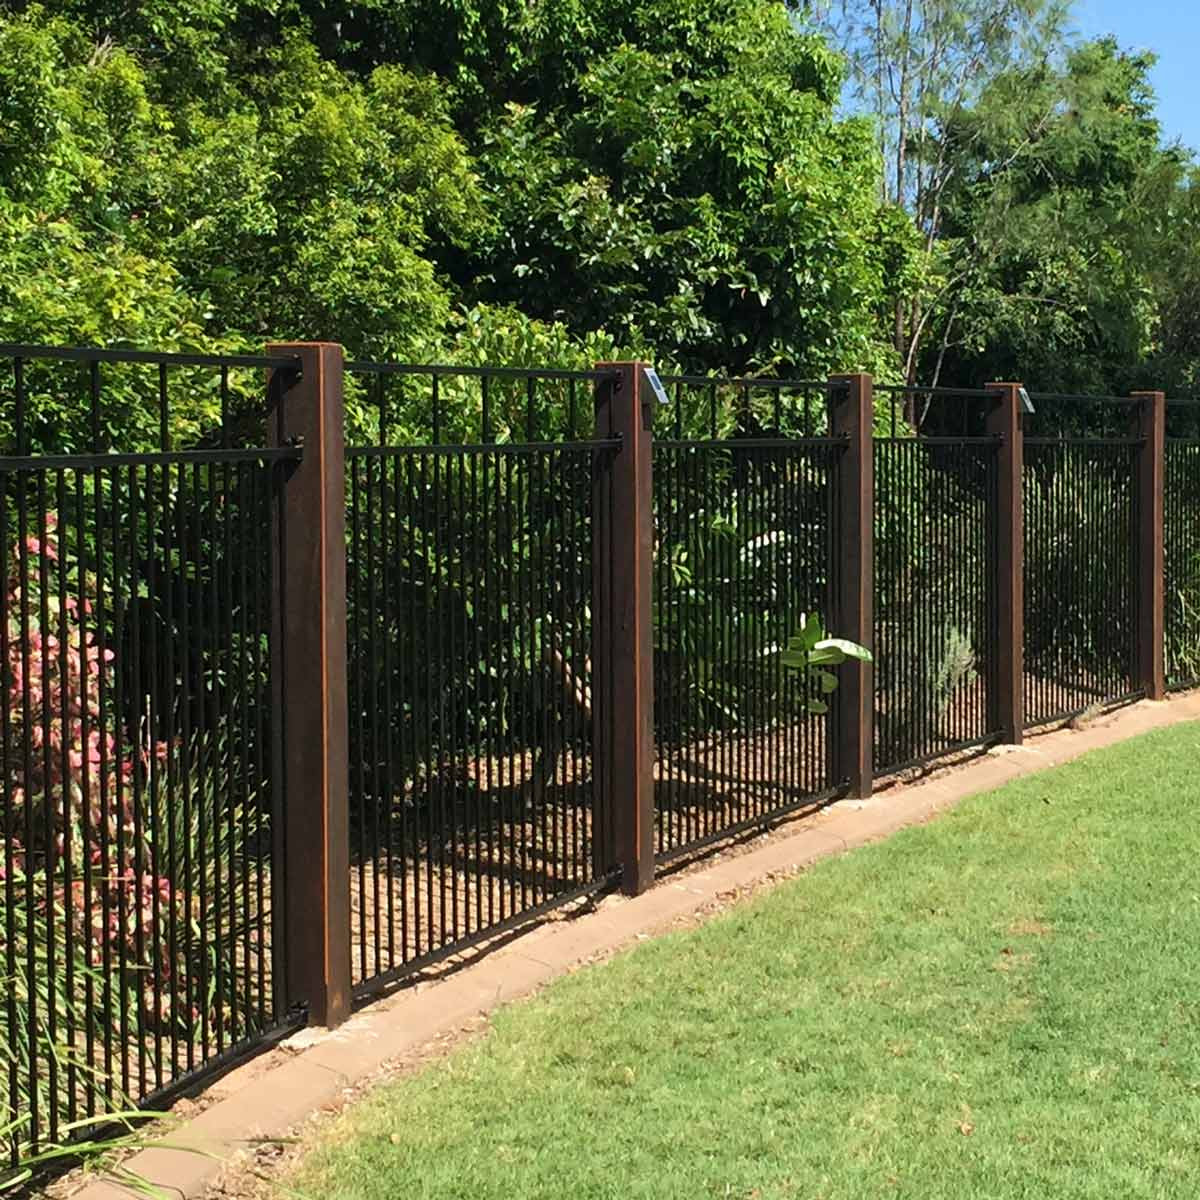 Best ideas about Backyard Fence Ideas . Save or Pin 10 Modern Fence Ideas for Your Backyard — The Family Handyman Now.